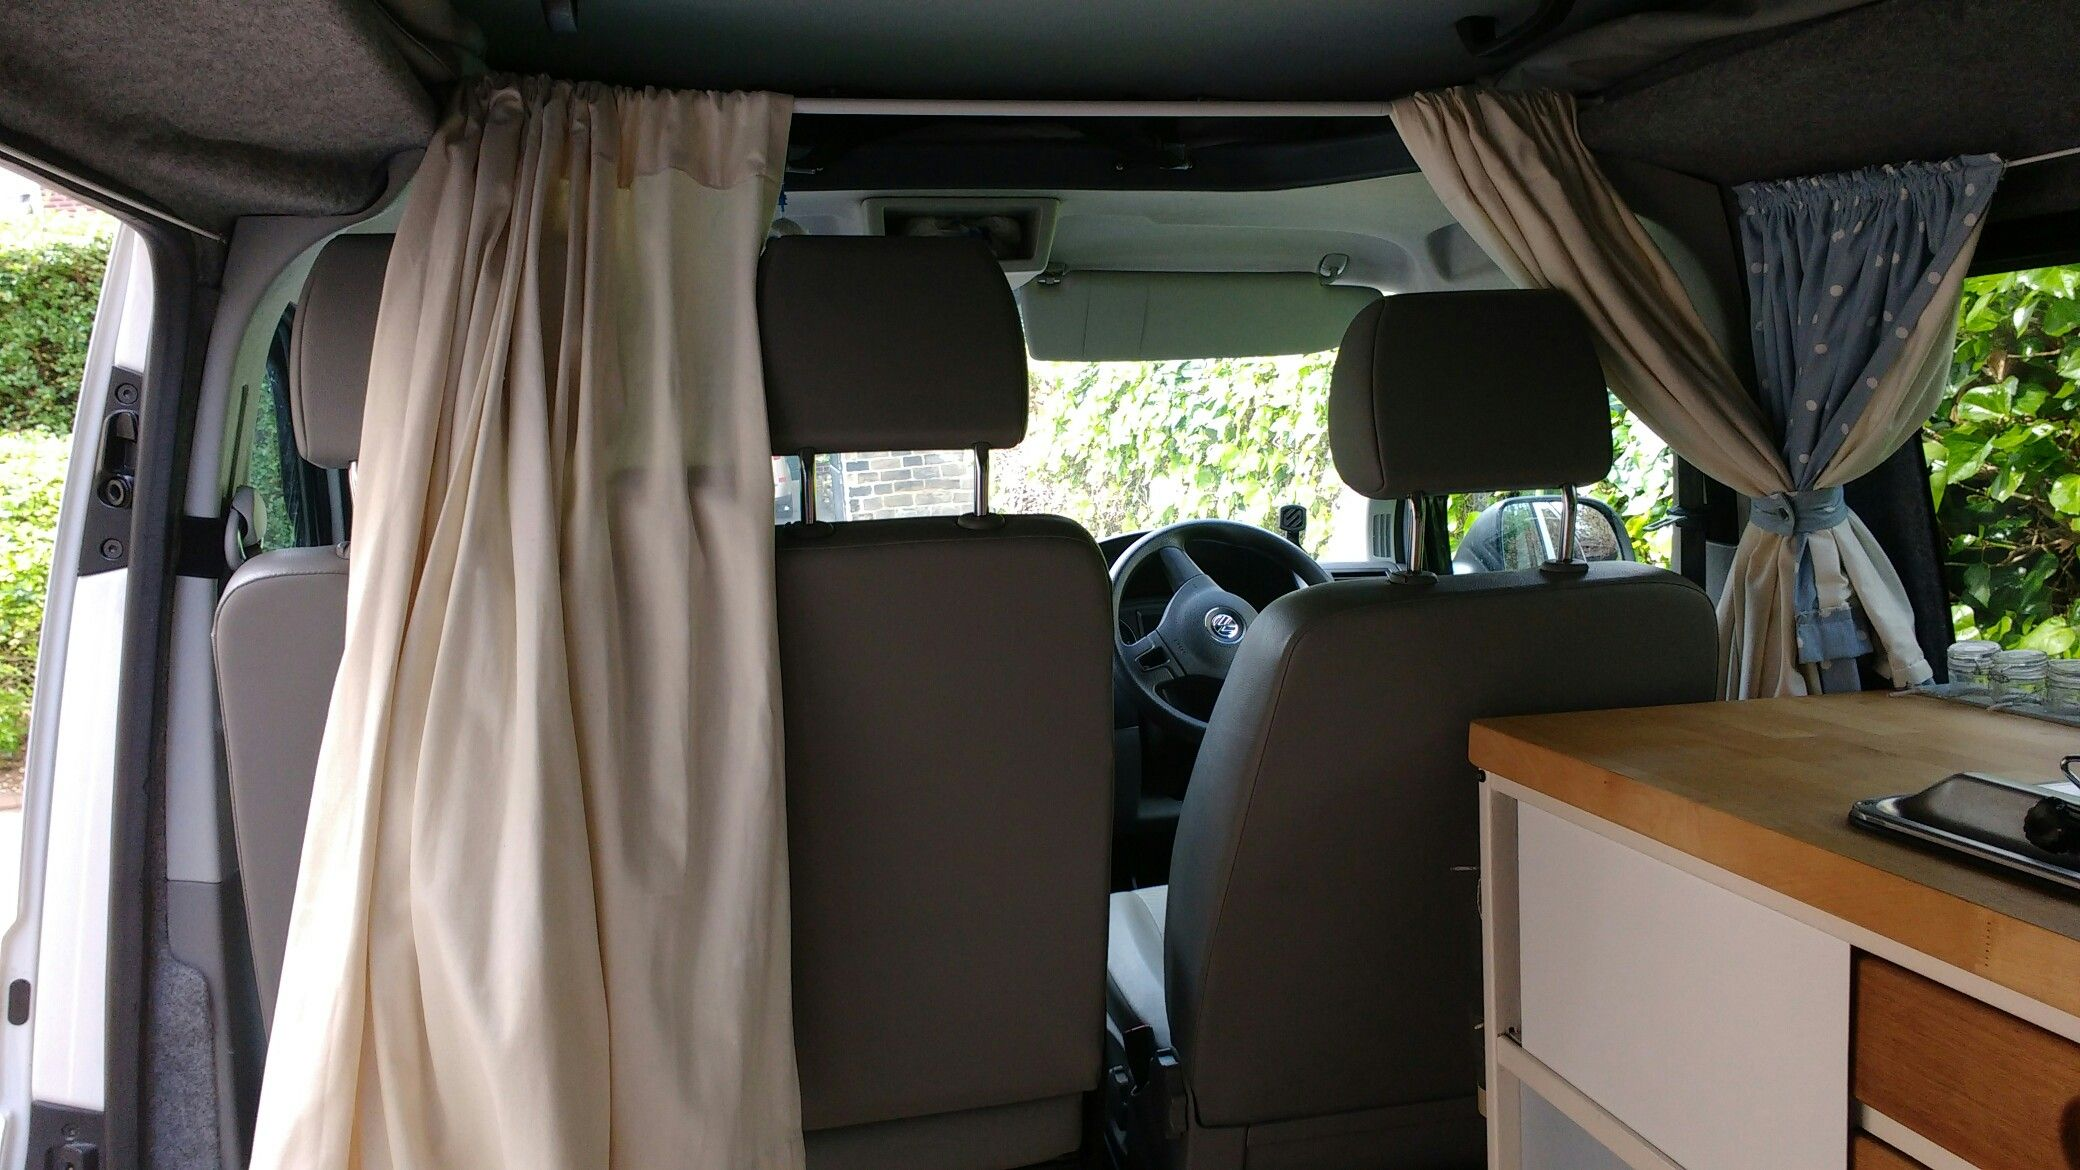 Cab Curtains Using Tension Rod Transit Connect Camper Ford